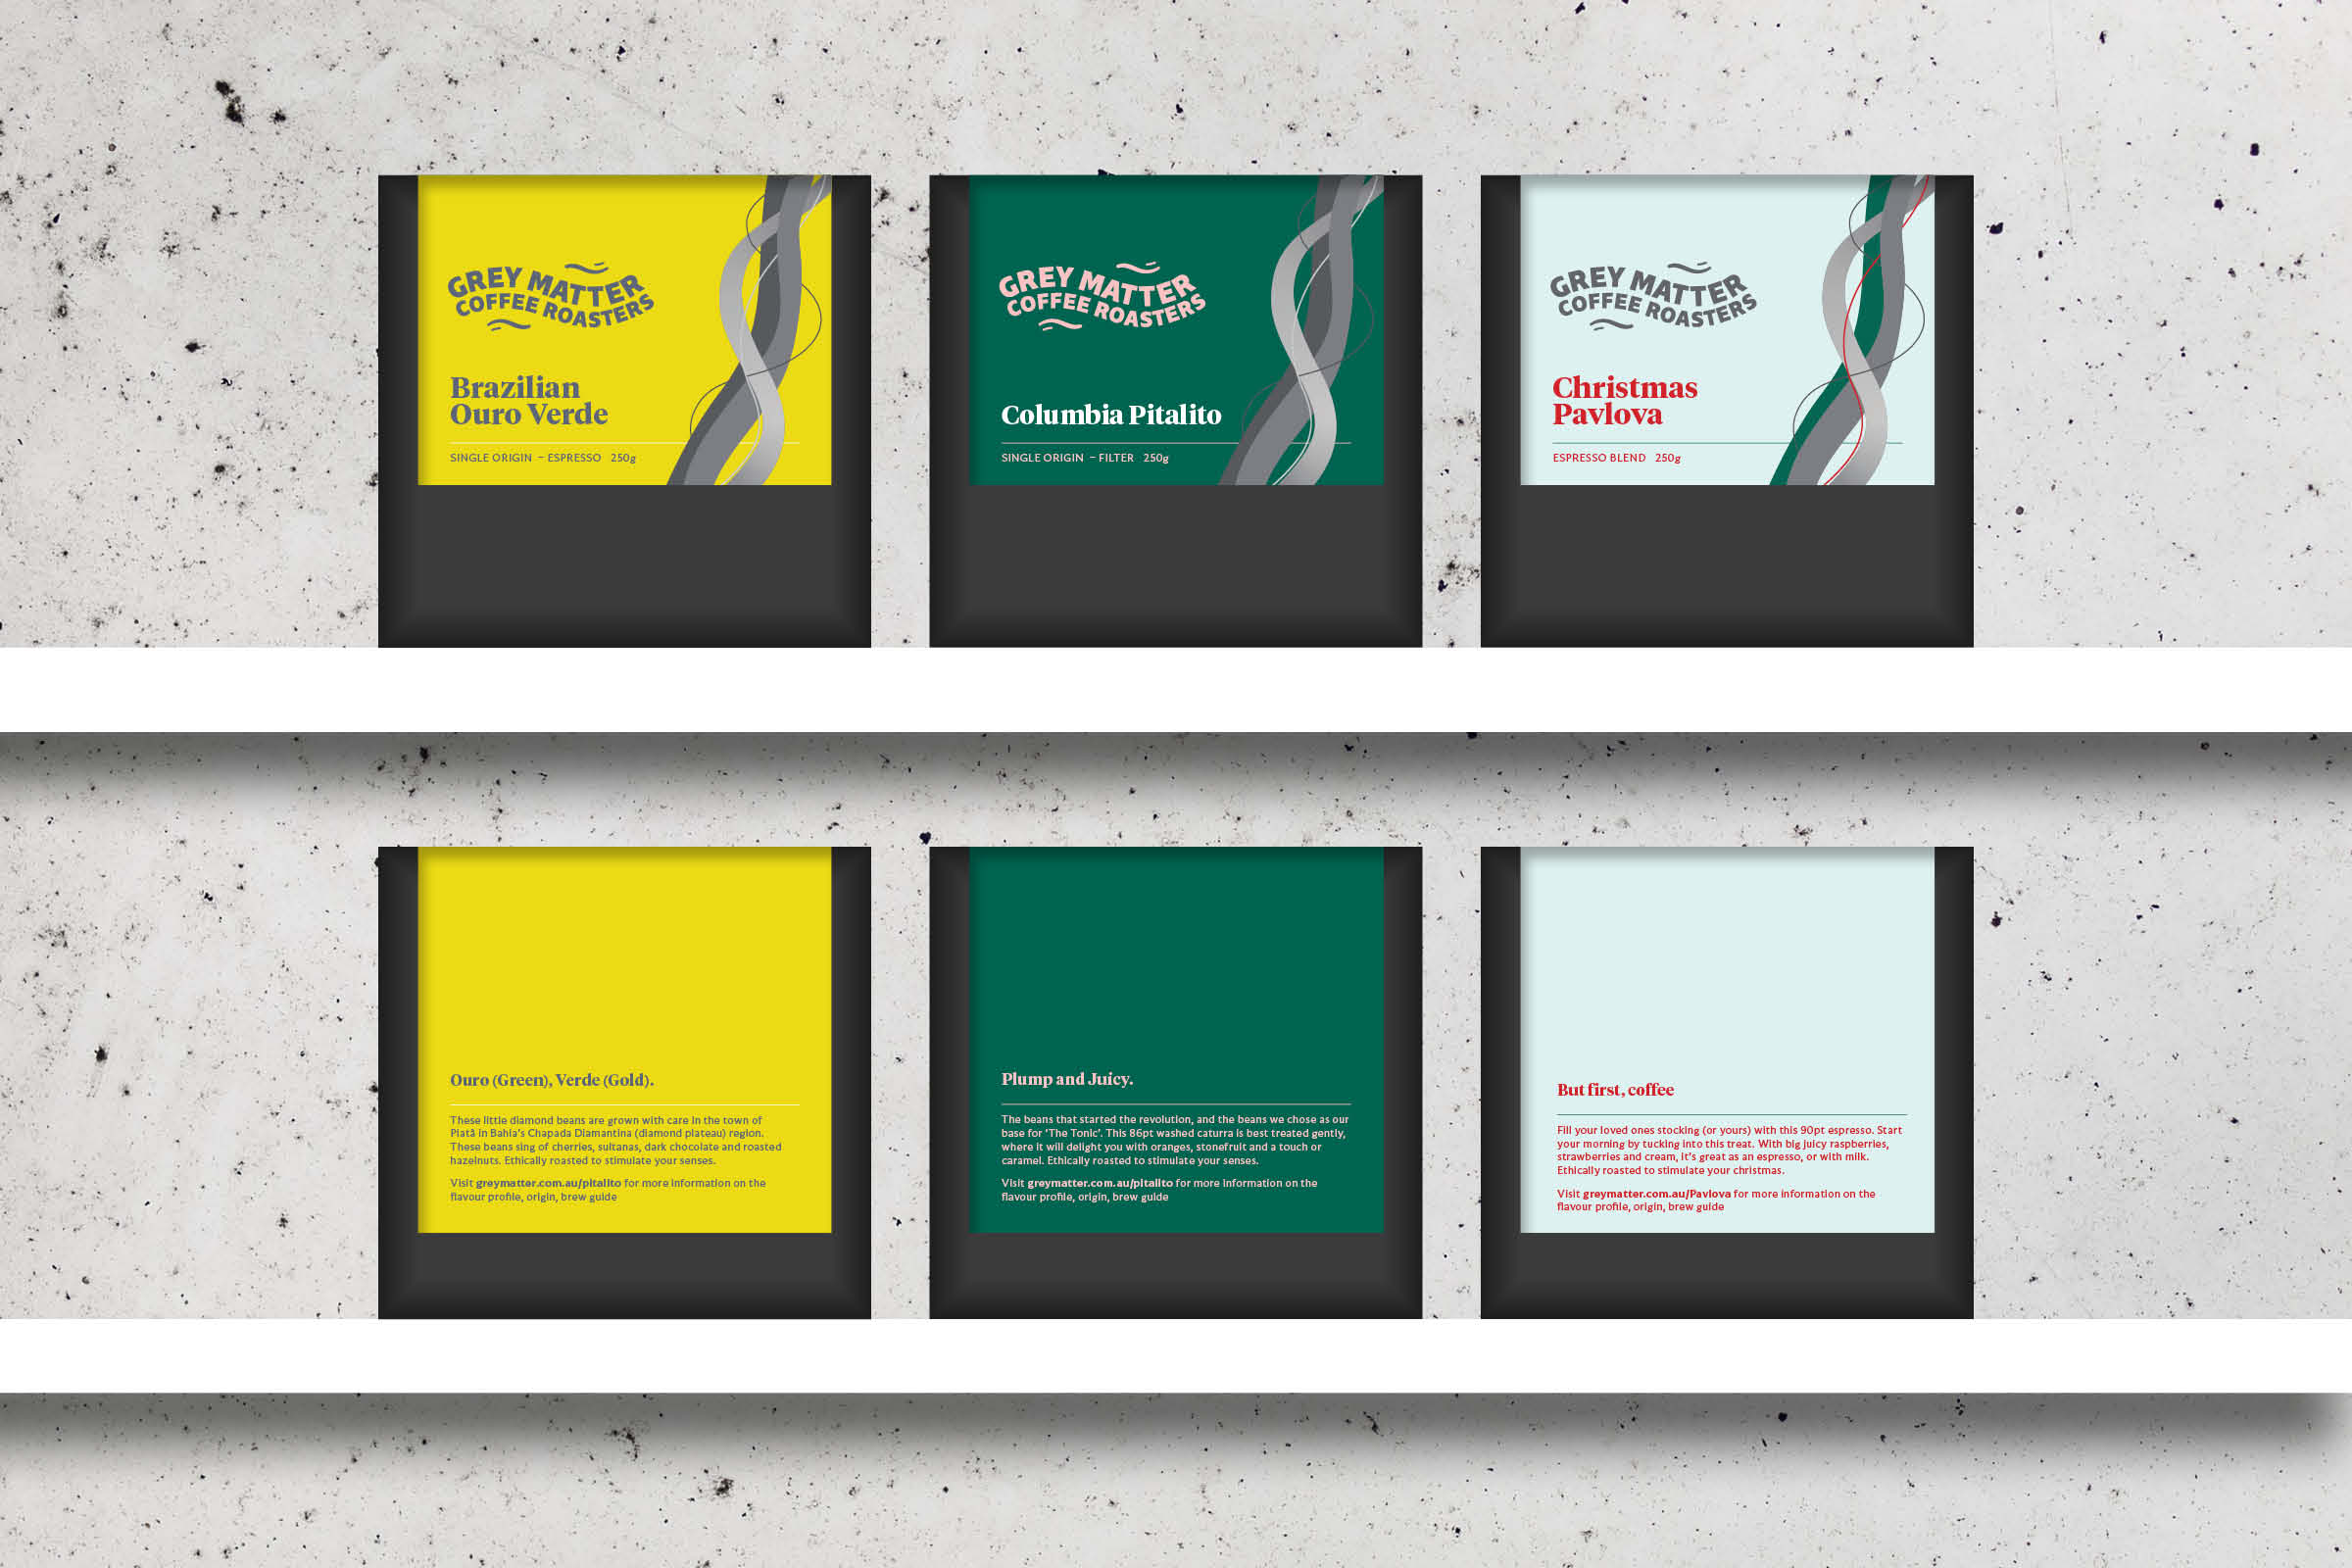 coffee bag packaging mockups for Grey Matter coffee roasters